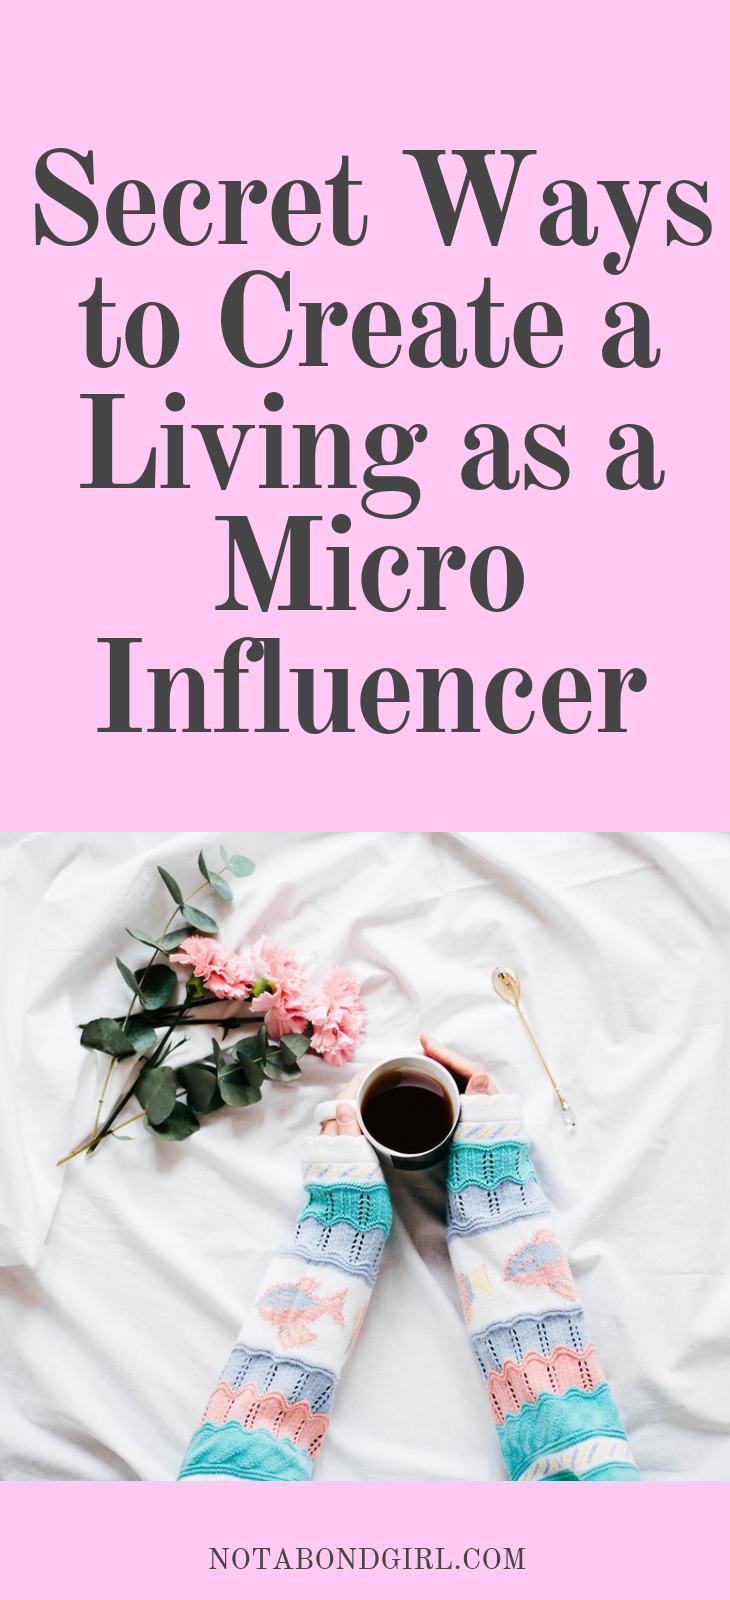 How to Make Money as a Micro-Influencer; What's a Micro-Influencer & How to Become One; Entrepreneur; Boss Babe; Business; Side Hustle #moneysaving #money #abundance #manifest #financialfreedom #personalfinance #moneytips #career #worklife #entrepreneur #blogger #onlinebusiness #girlboss #bossbabe #mindset #debtfree #personaldevelopment #entrepreneur #entrepreneurship #solopreneur #mompreneur #business #pinterest #socialmedia #digitalmarketing #seo #influencer #blog #website #marketing